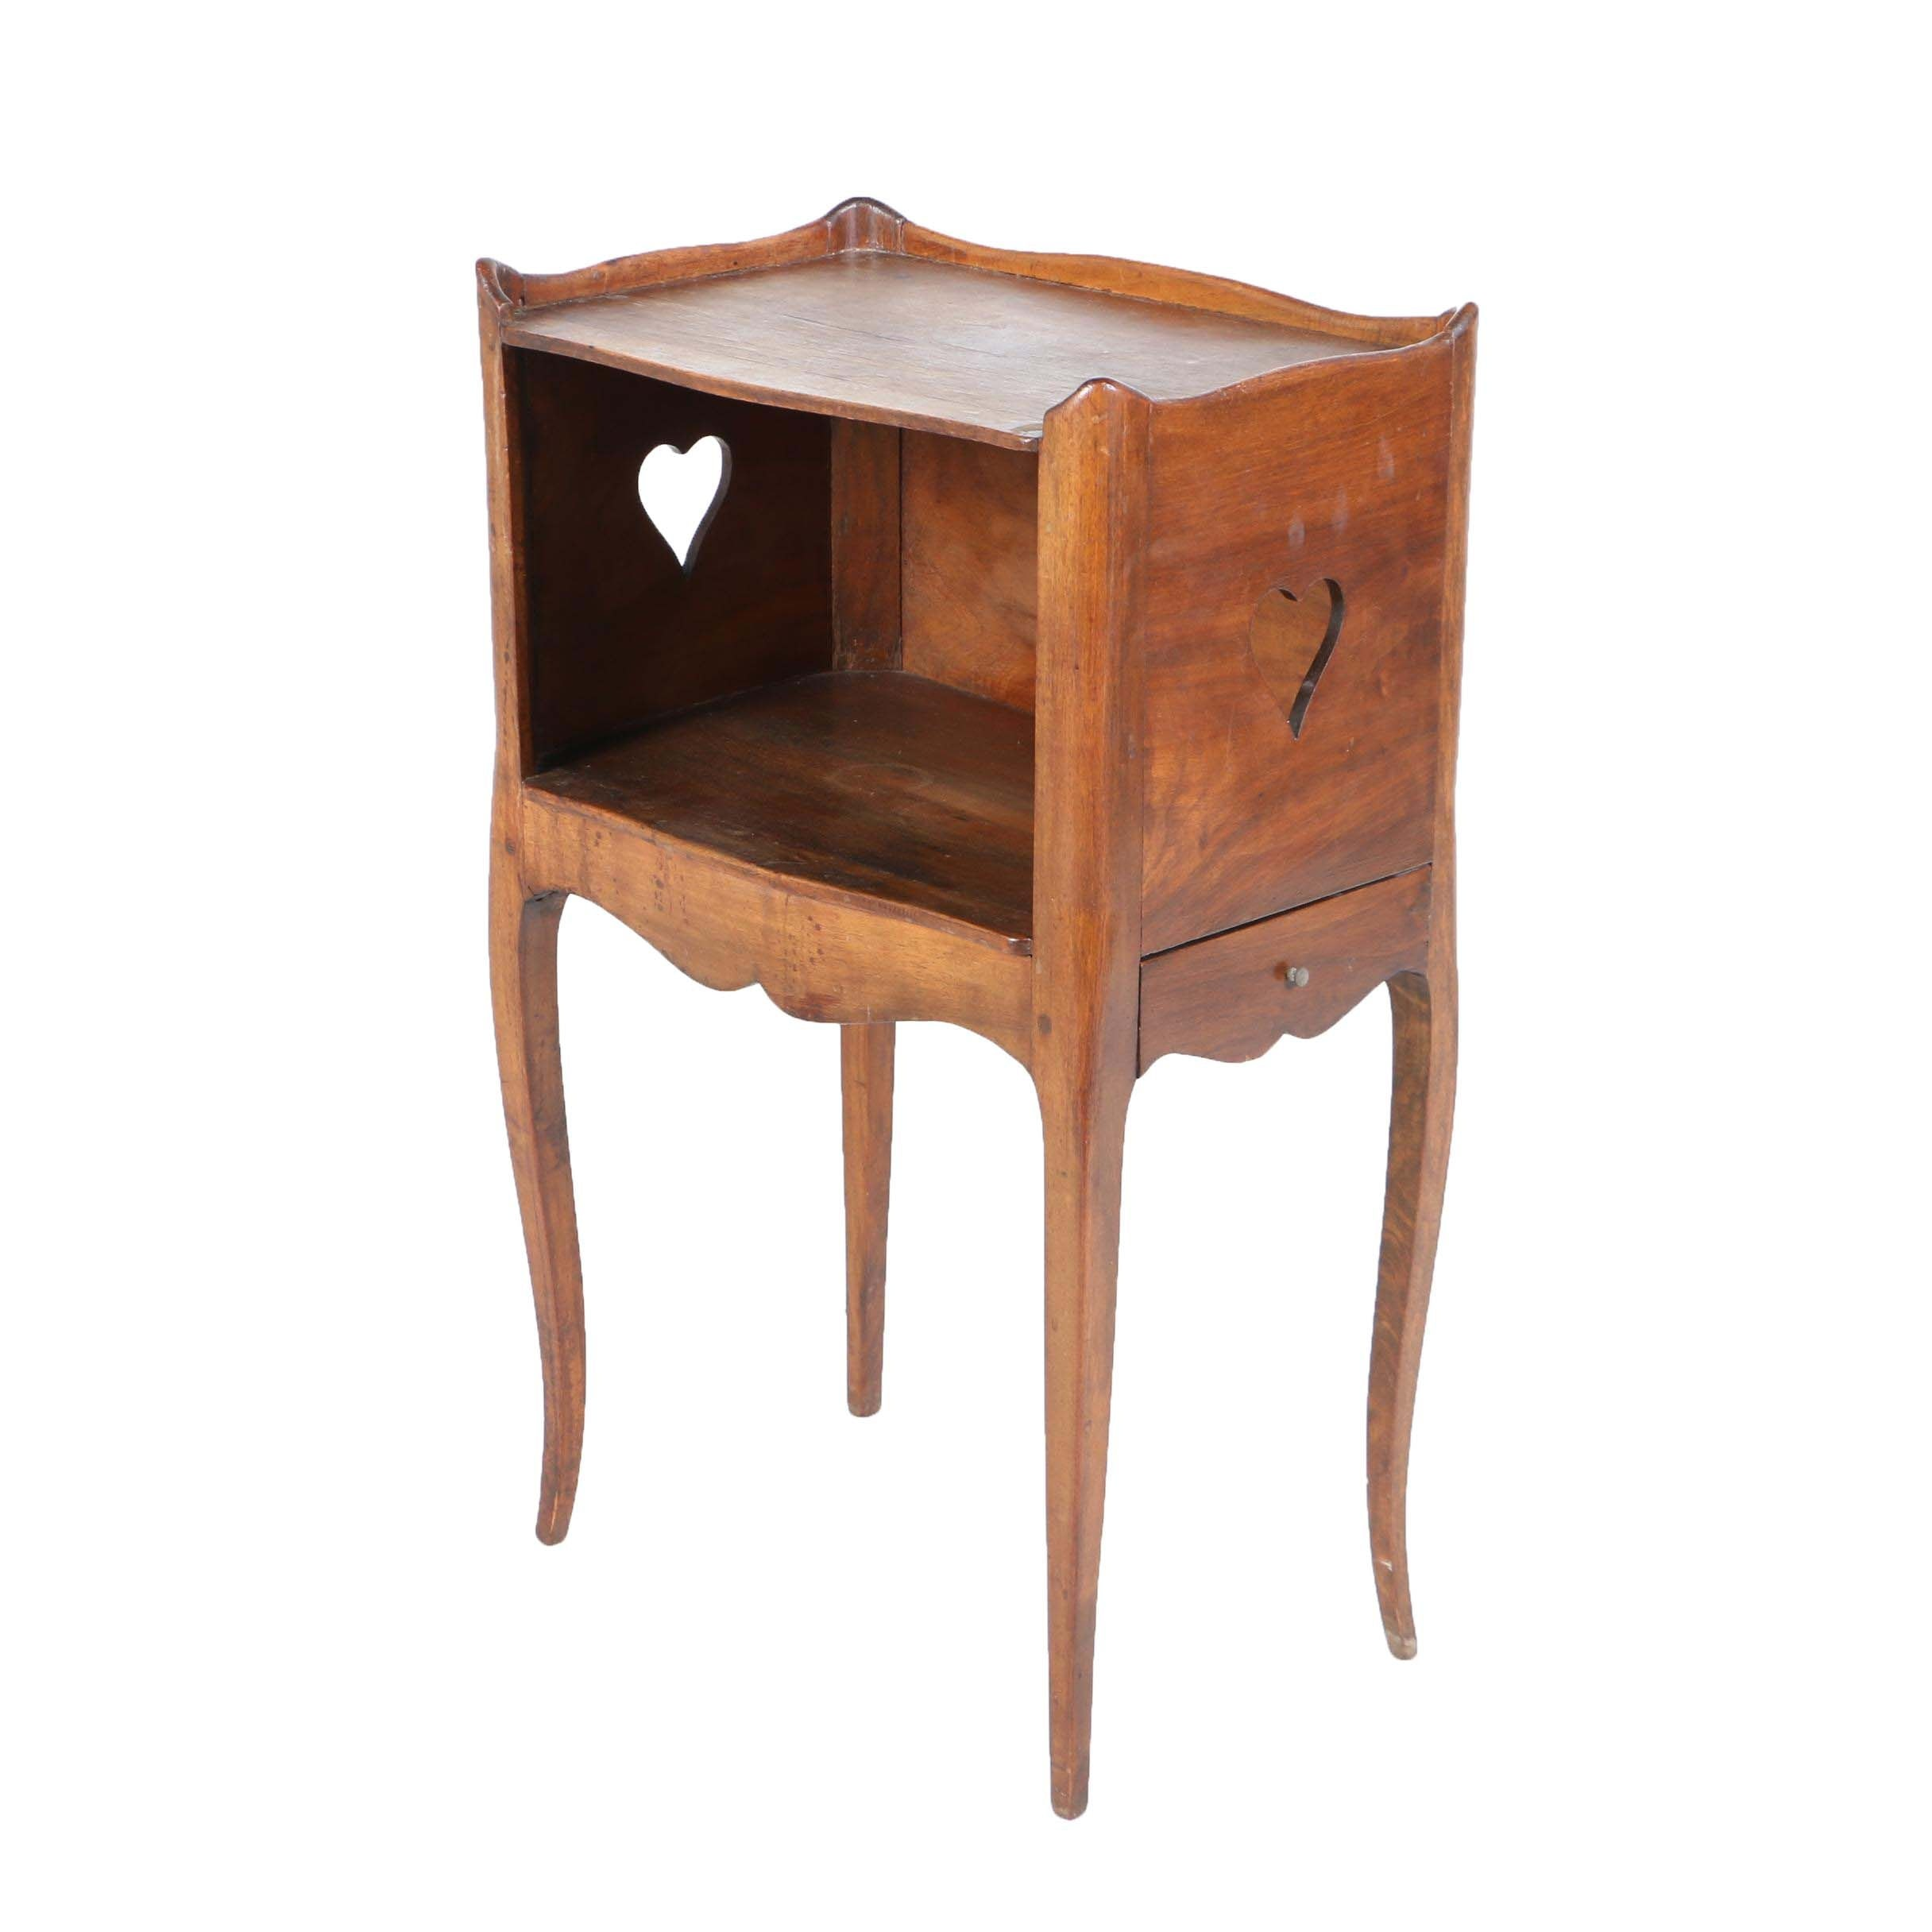 Louis XV Style Walnut Bedside Stand with Drawer, 20th Century